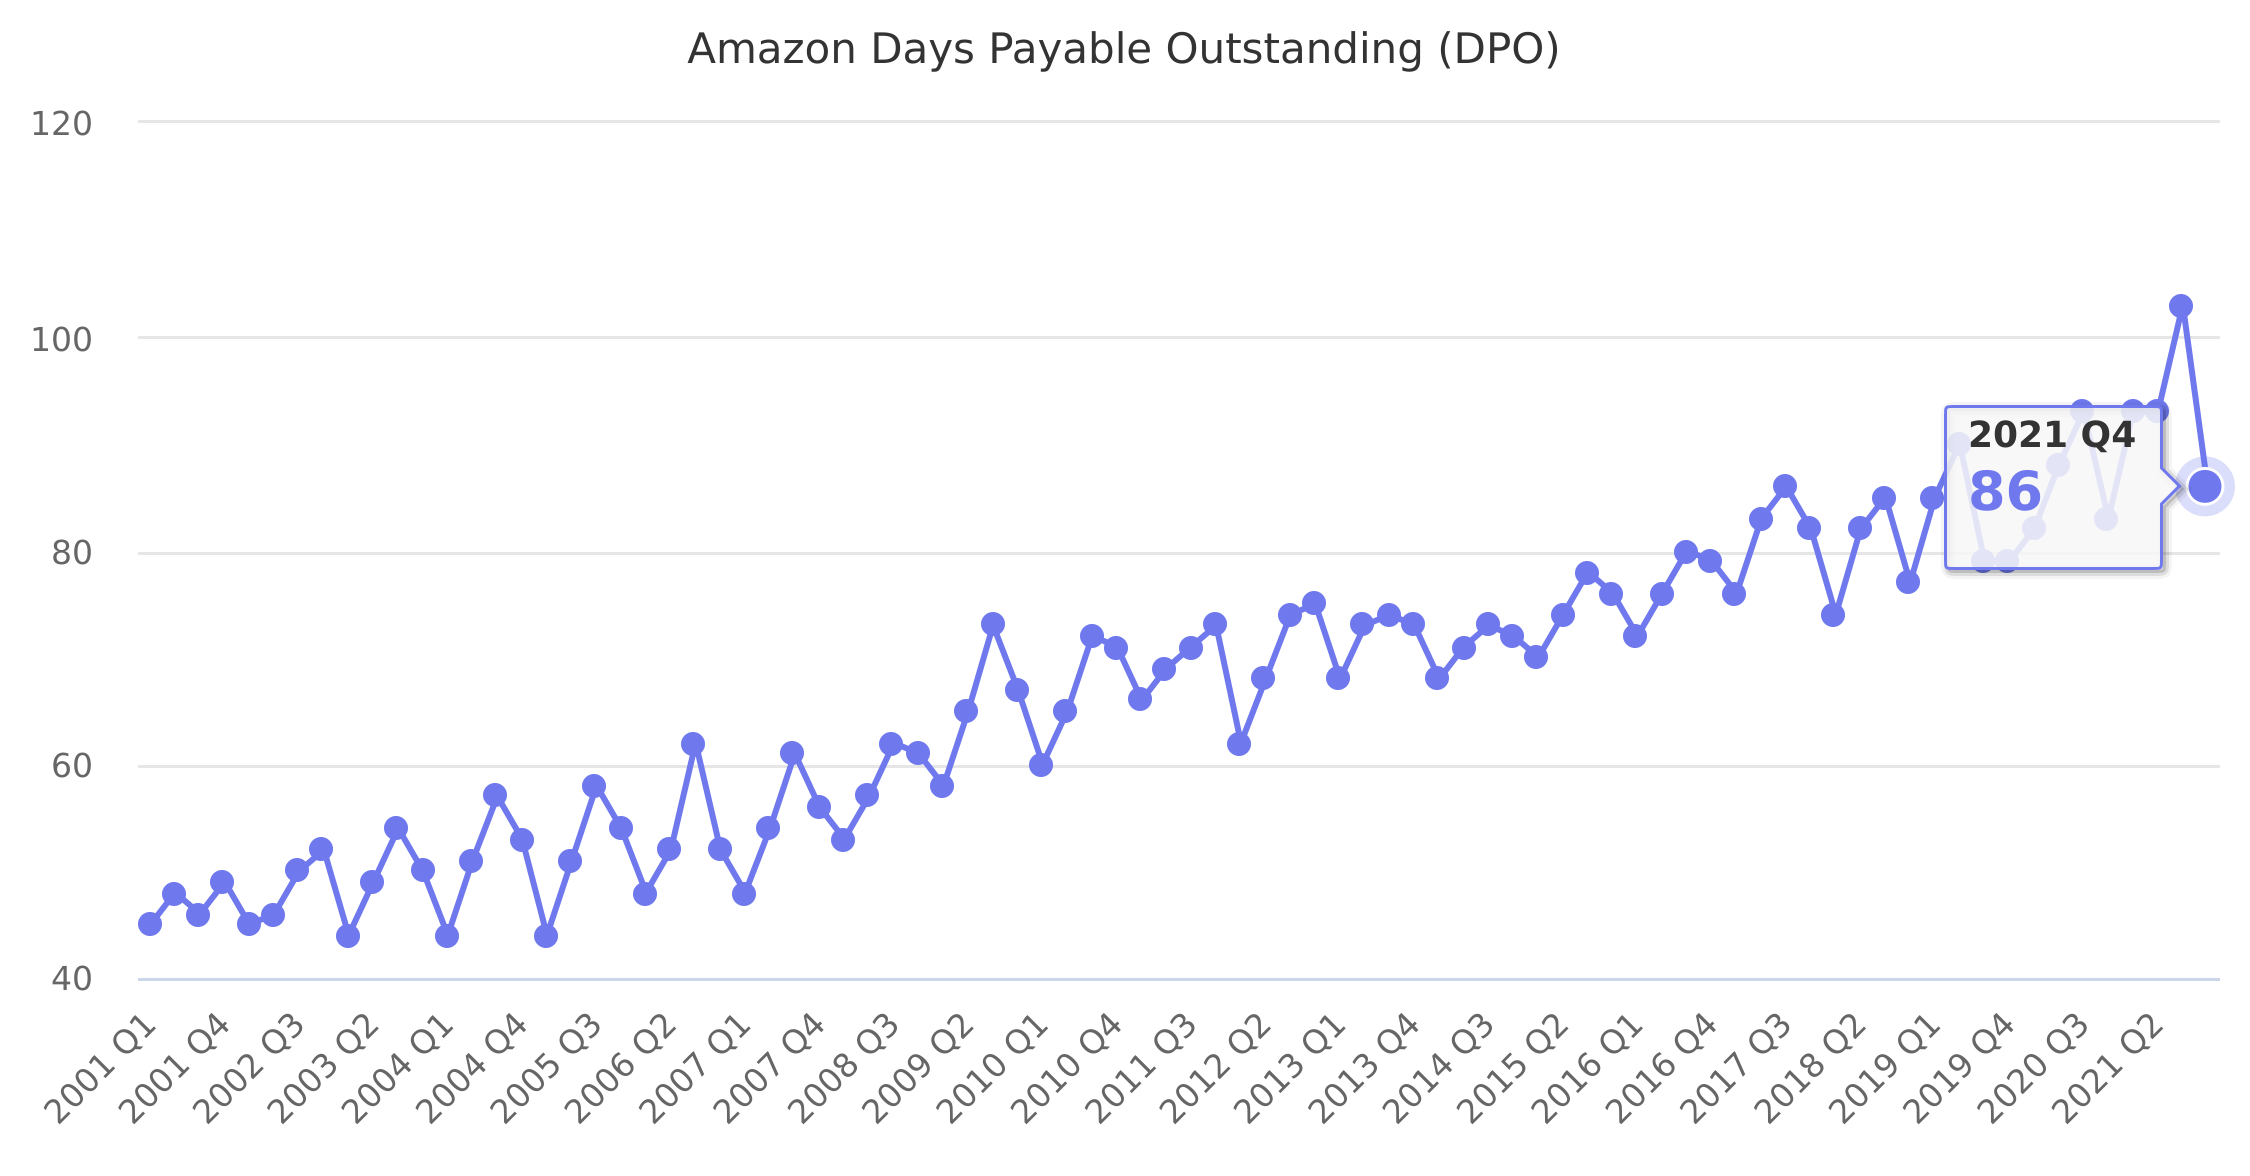 Amazon Days Payable Outstanding (DPO) 2001-2018